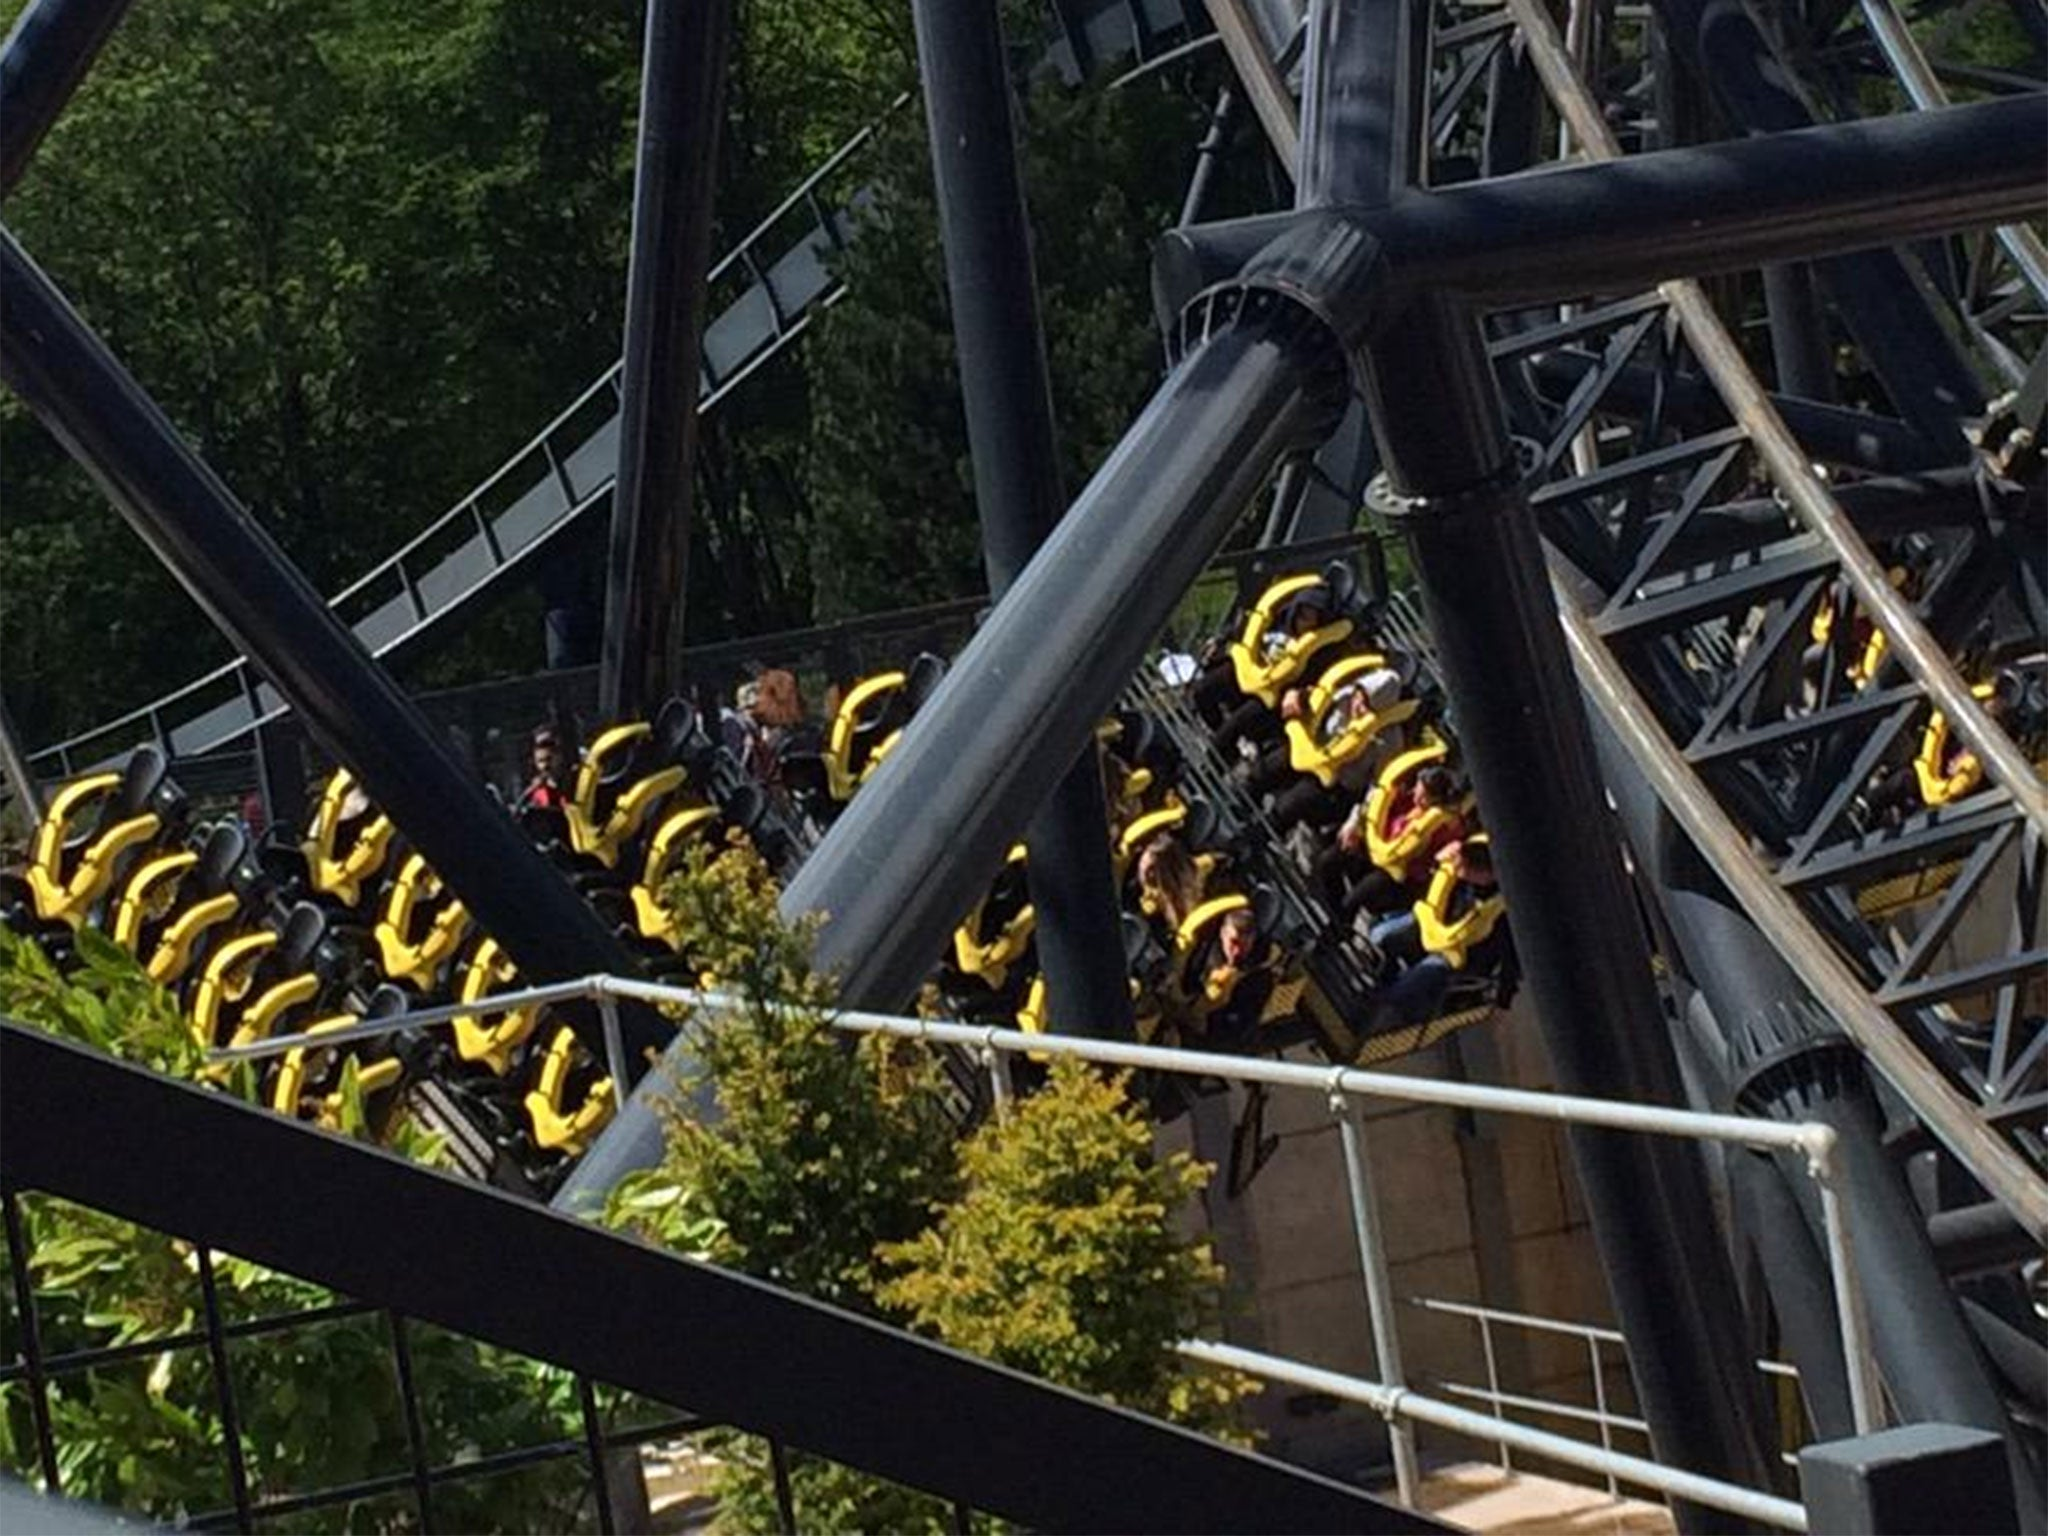 Http www alton towers co uk pages theme park - Alton Towers Closed After Horror Crash On The Smiler Raises Safety Questions For Theme Park The Independent